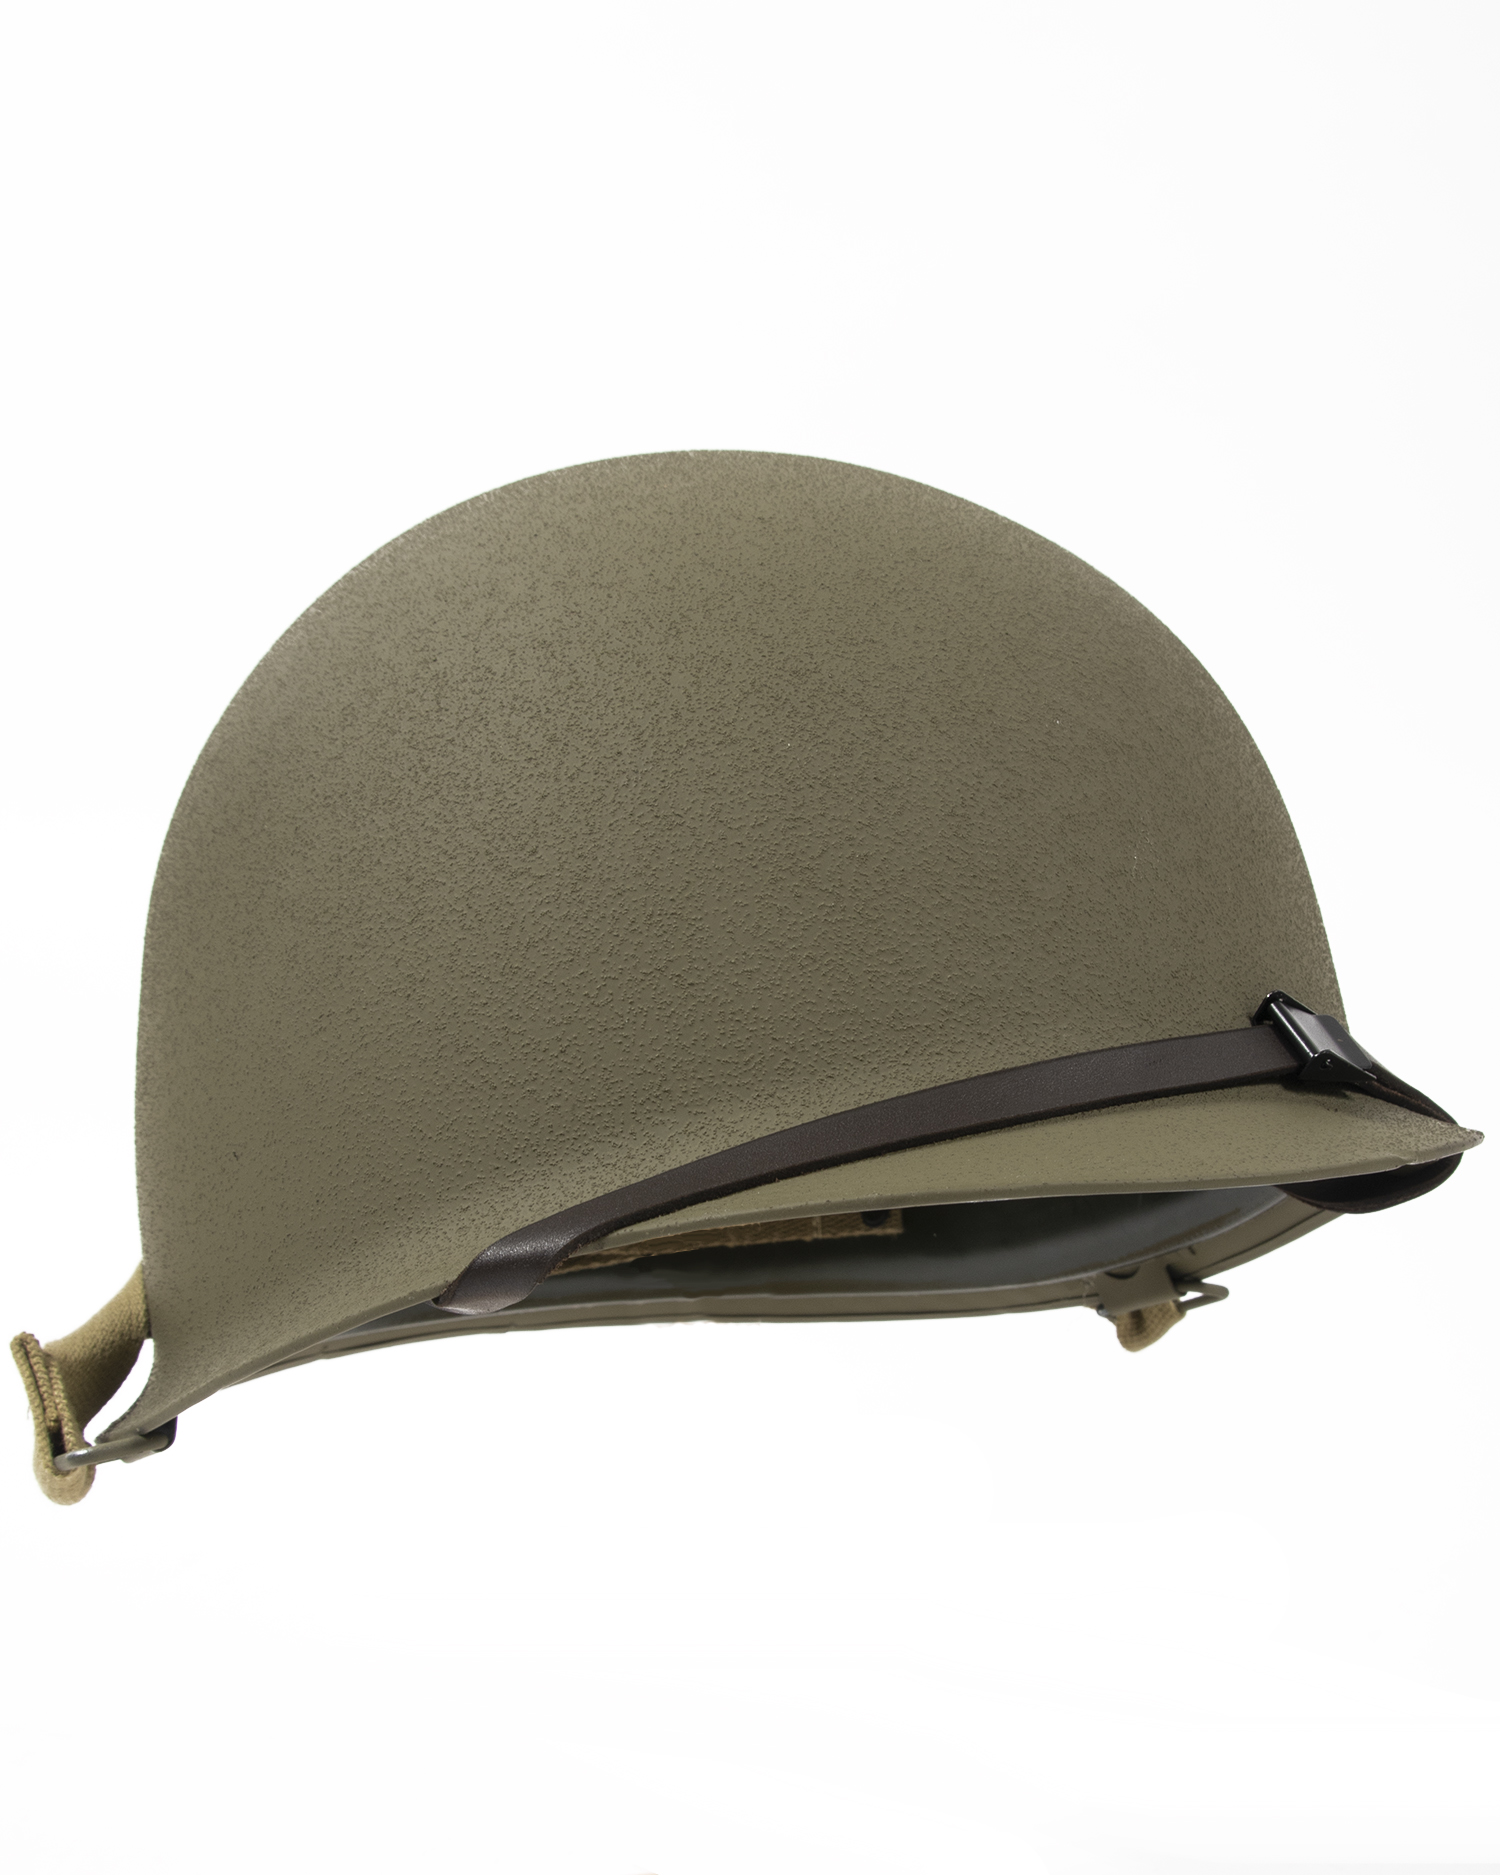 Reproduction WWII M1 Helmet